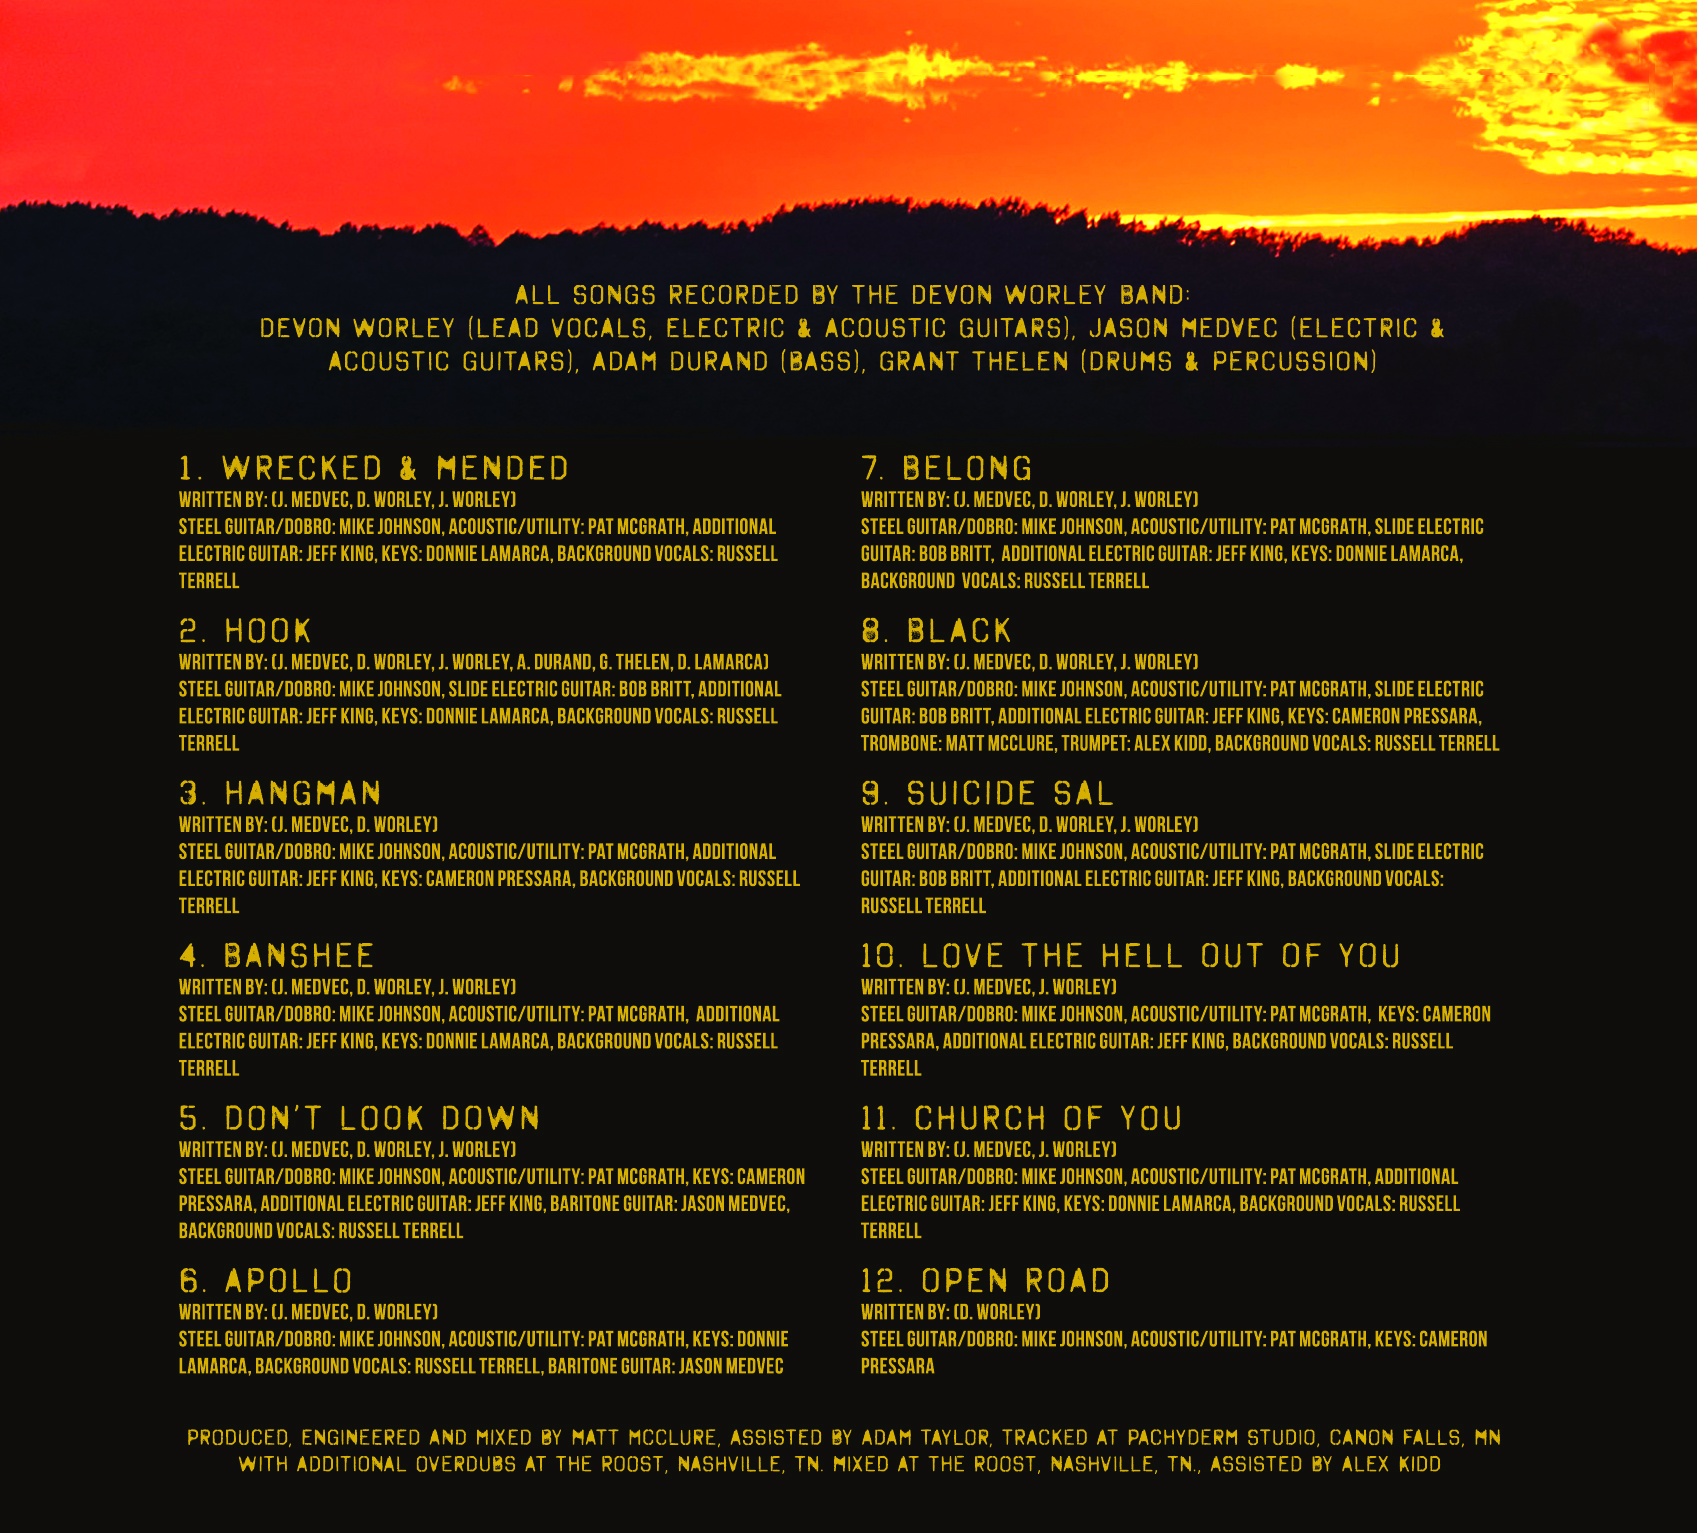 Songs-and-Credits